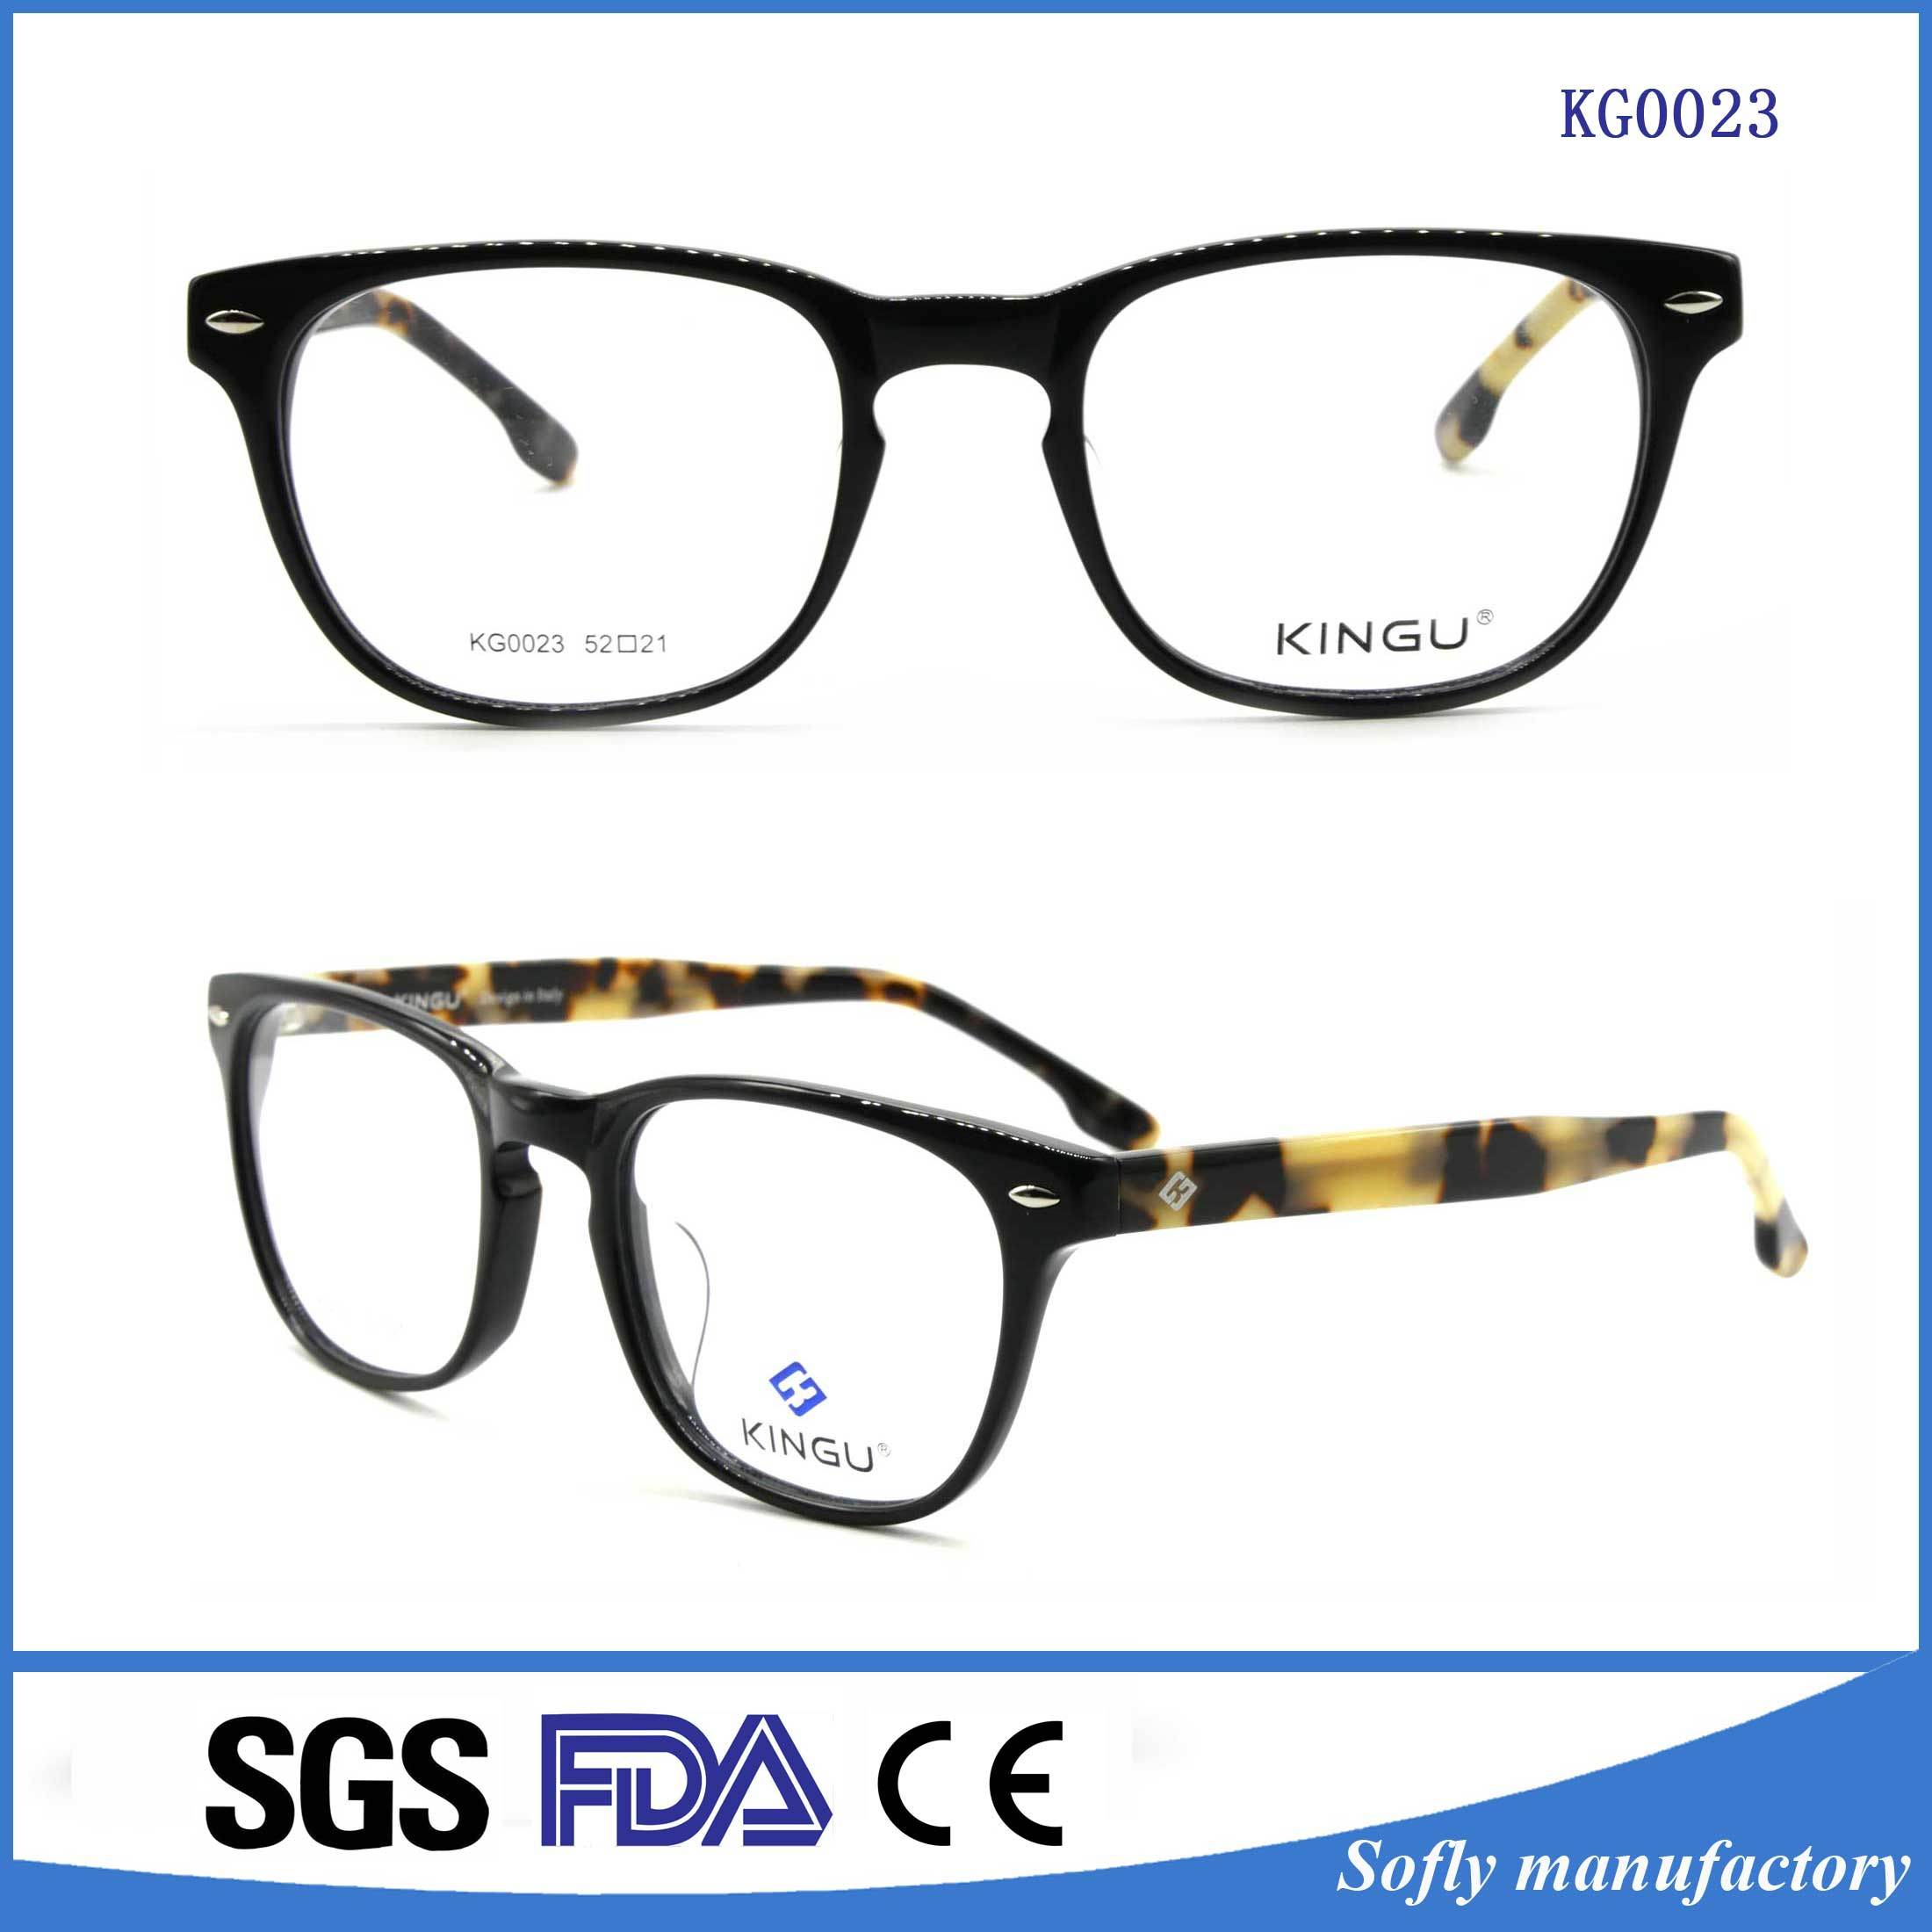 28603dfa9258 China No Brand Romantic Optical Eyeglasses Frames for Glasses for Girl -  China Romantic Optical Eye Glasses Frames